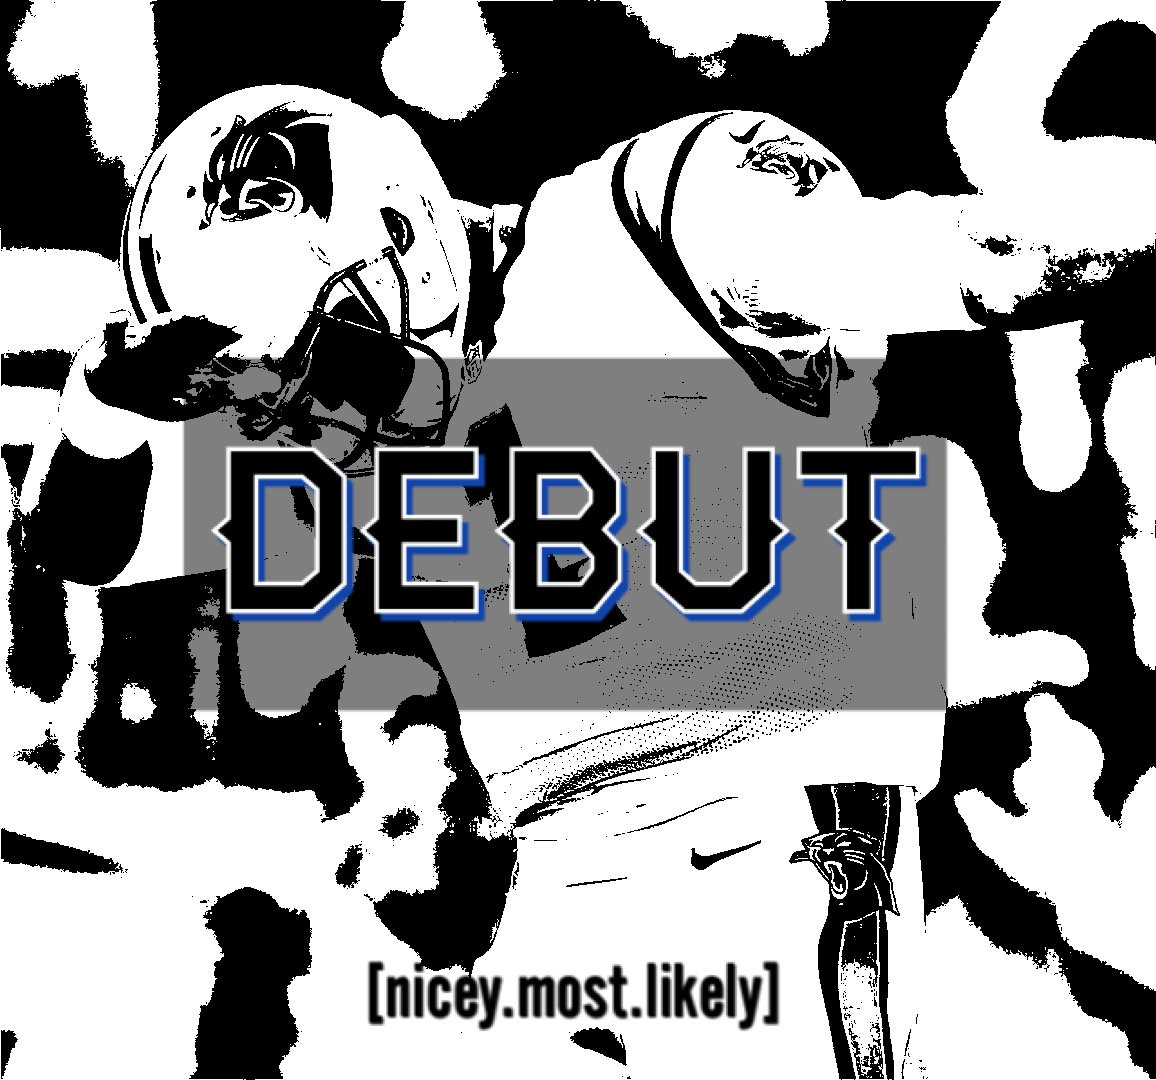 nicey_most_likely_debut_gfx_single_2016